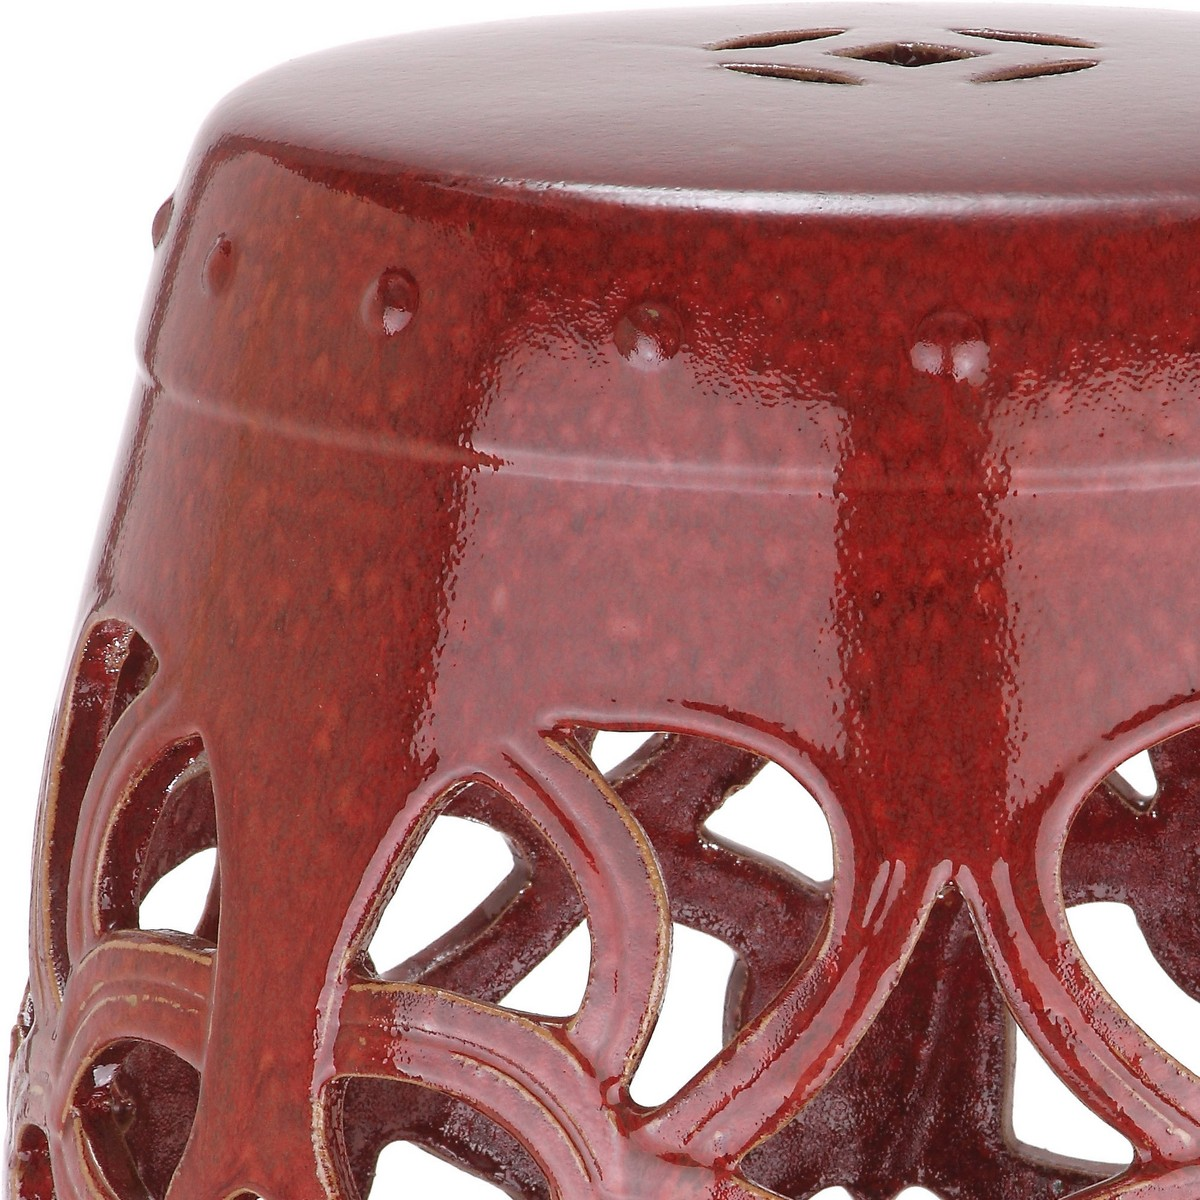 Perked Up In Elegant Antique Red, The Ages Old Motif Of The Imperial Vine  Indoor Outdoor Garden Stool Will Add Fashion Punch To Any Home.